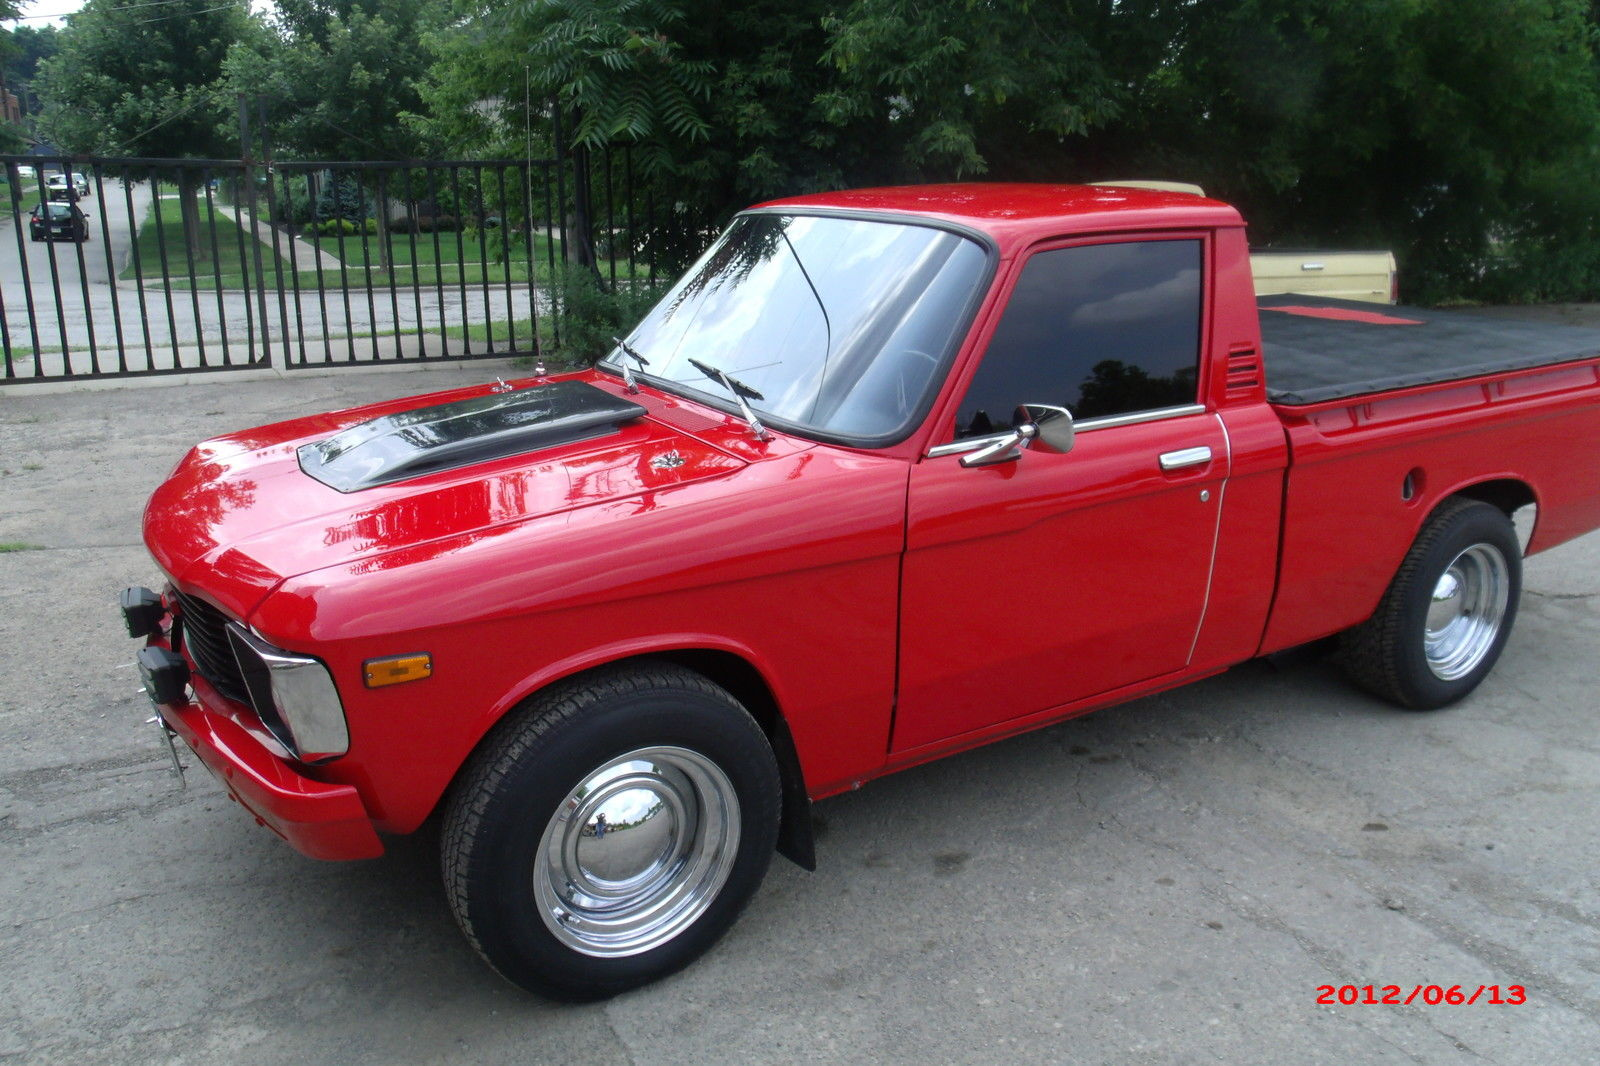 1978 Chevy Luv Truck For Sale In Ashtabula Ohio United